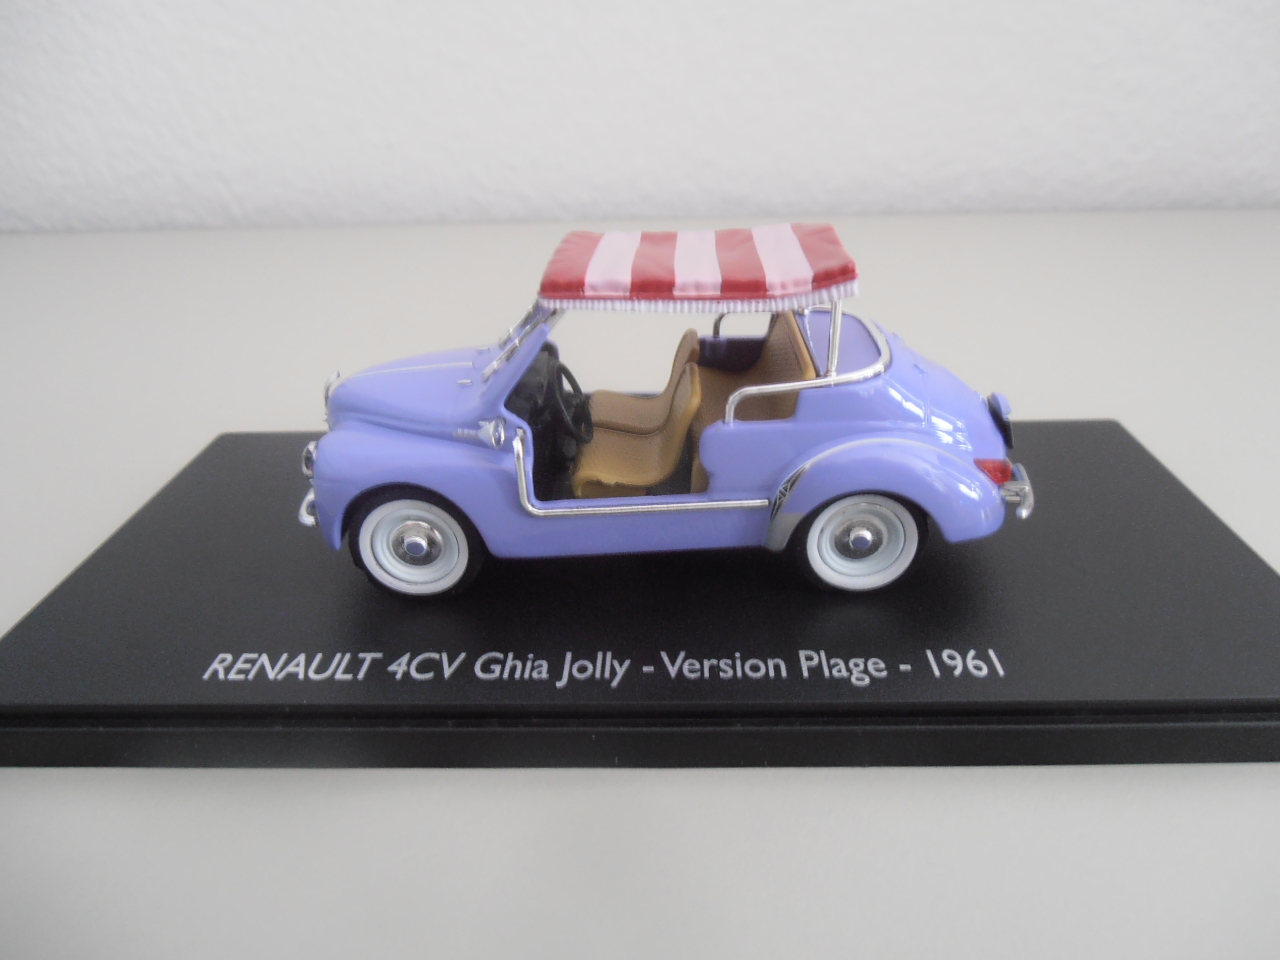 Renault 4cv Ghia Jolly Version Plage 1961 Eligor 143